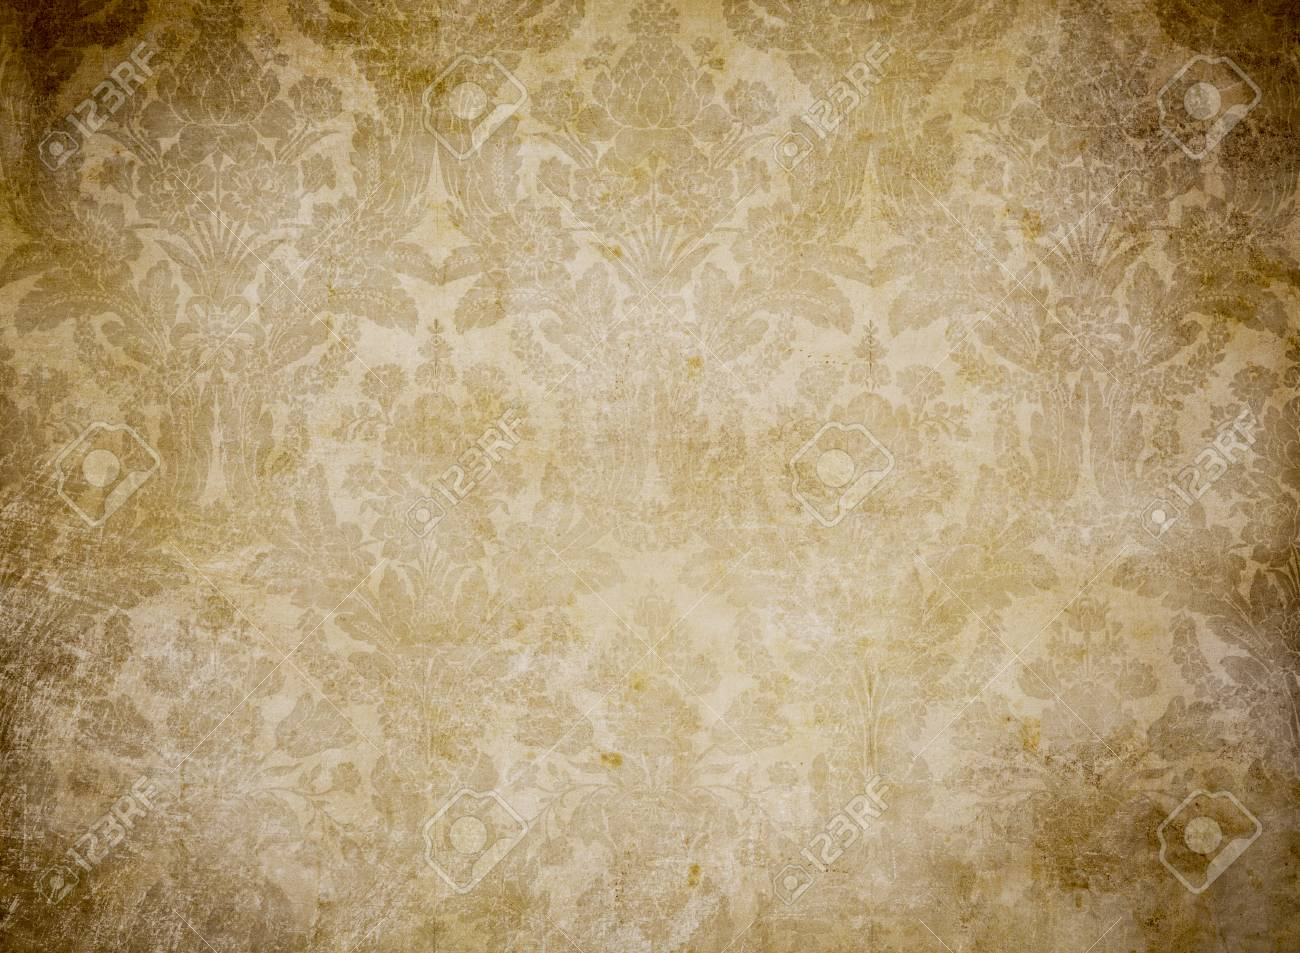 Grunge Vintage Wallpaper With Classy Pattern Stock Photo Picture